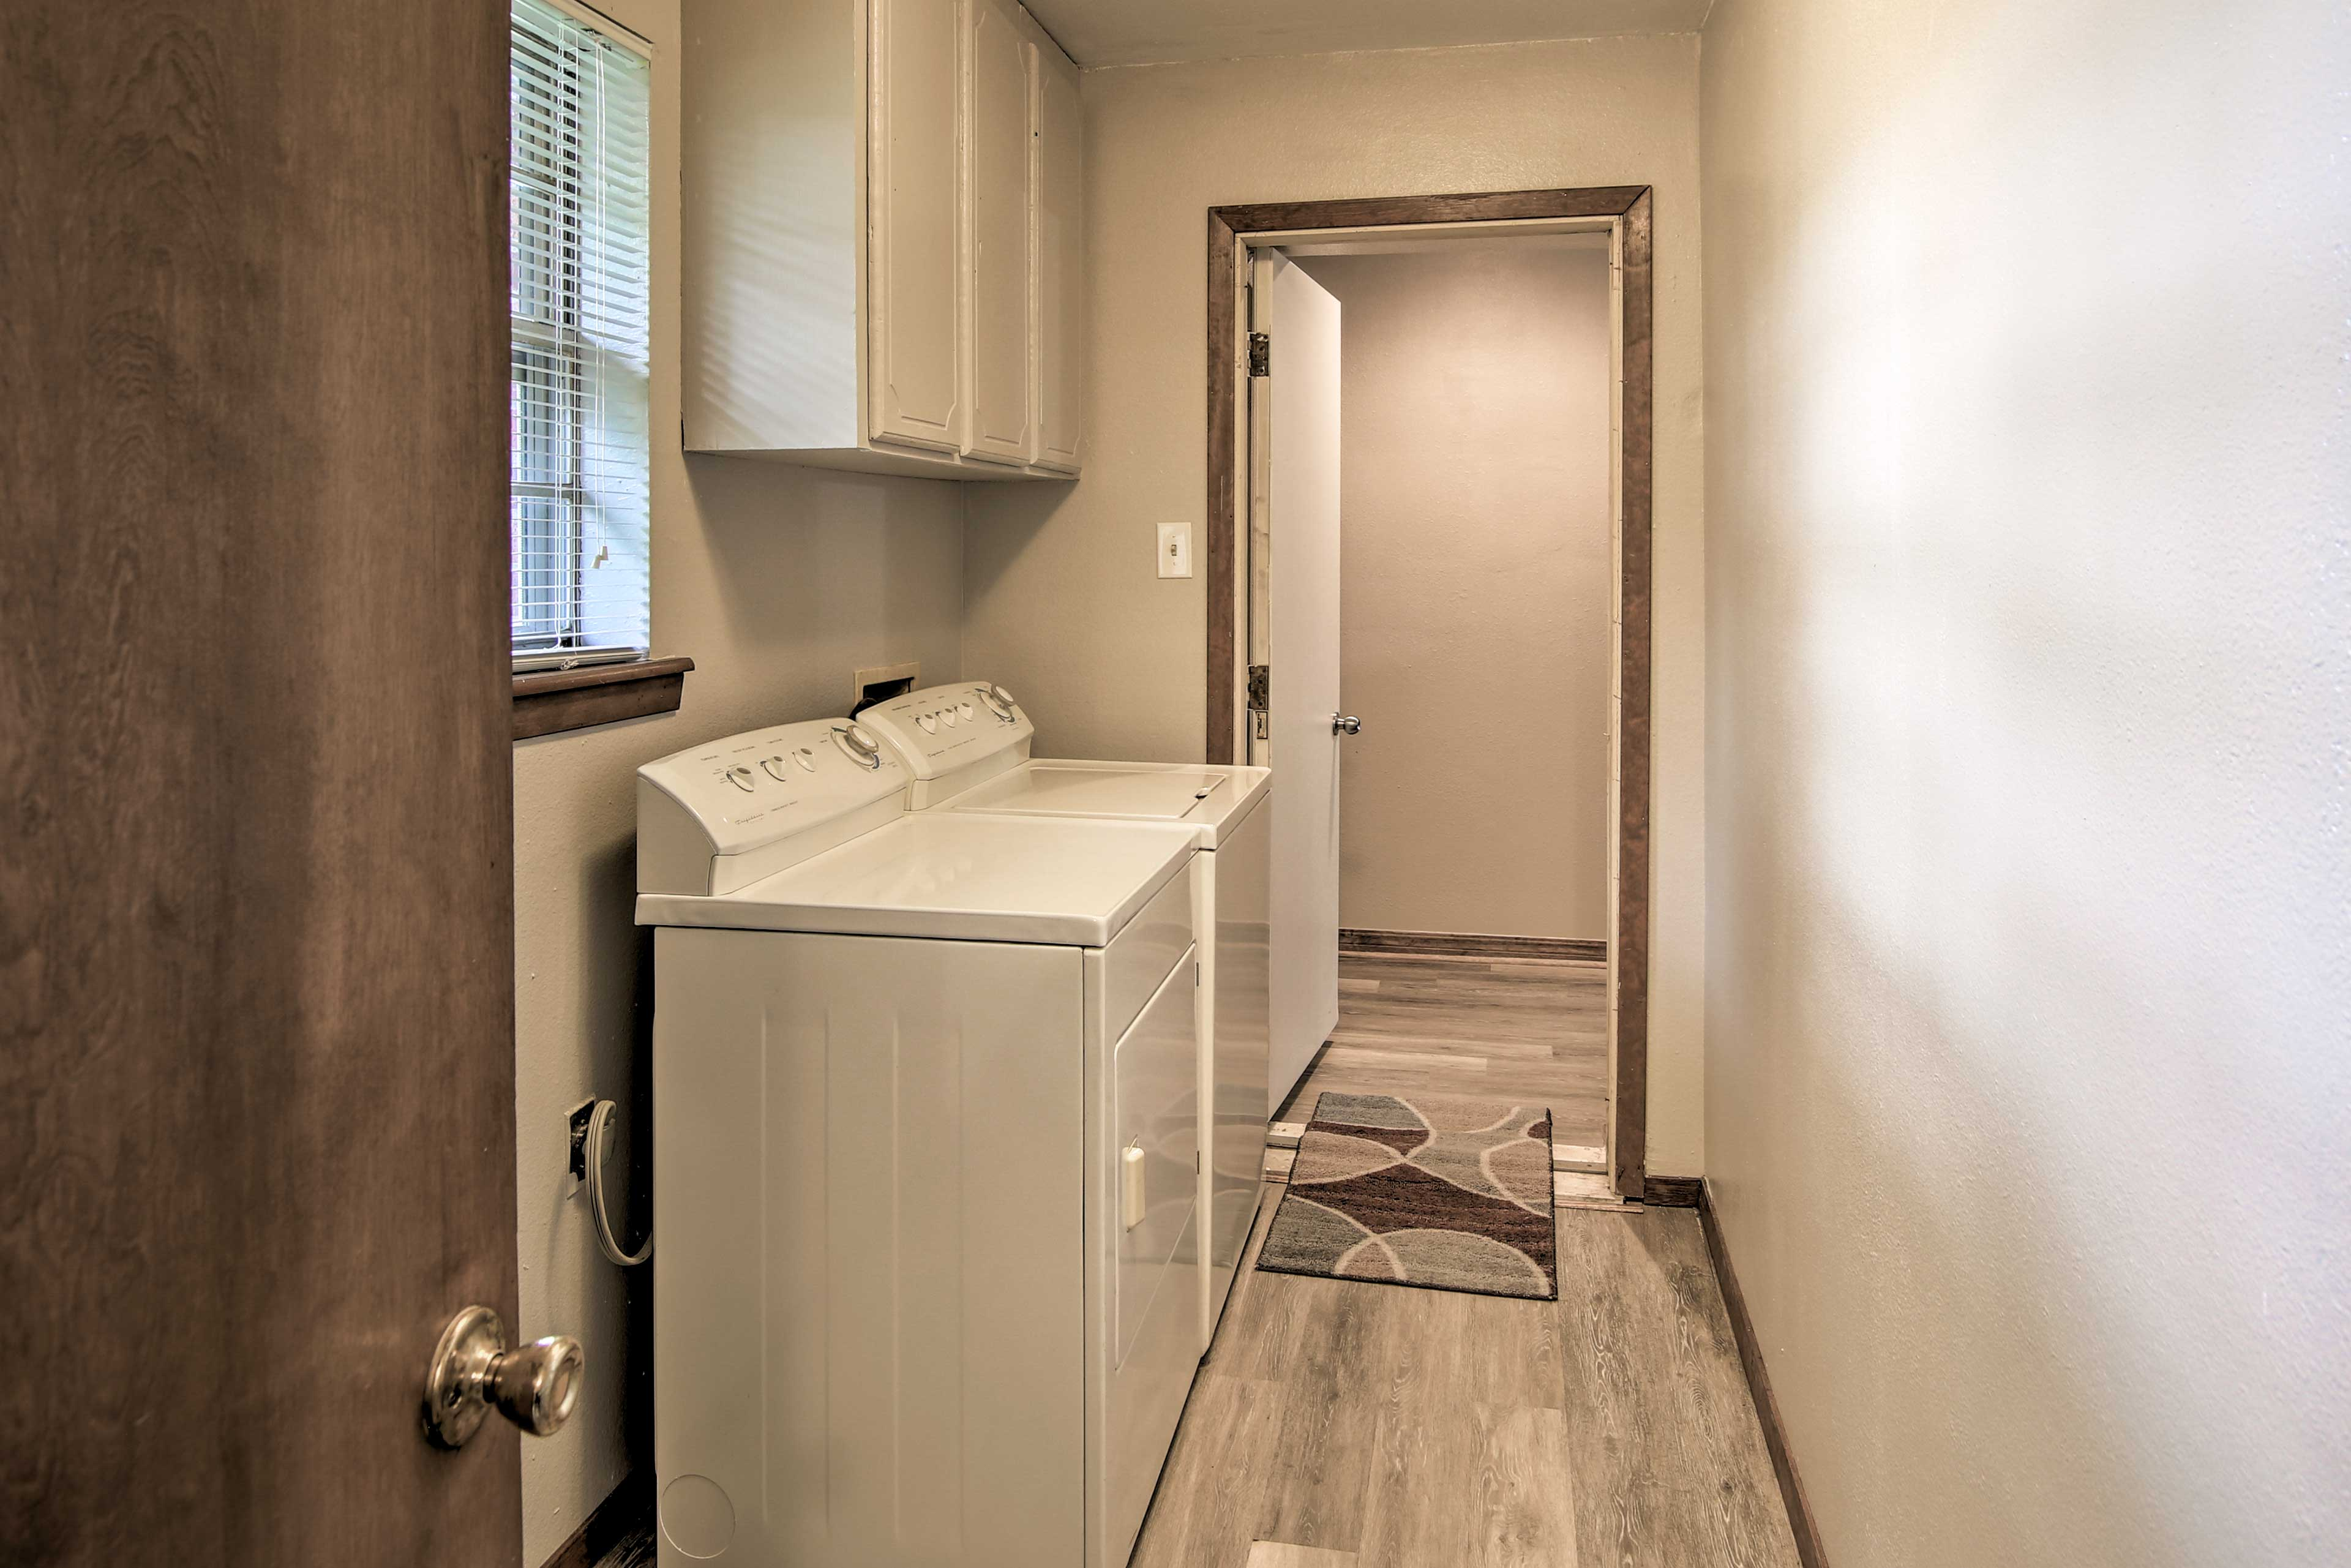 Keeping your clothing clean will be a breeze with the washer and dryer.